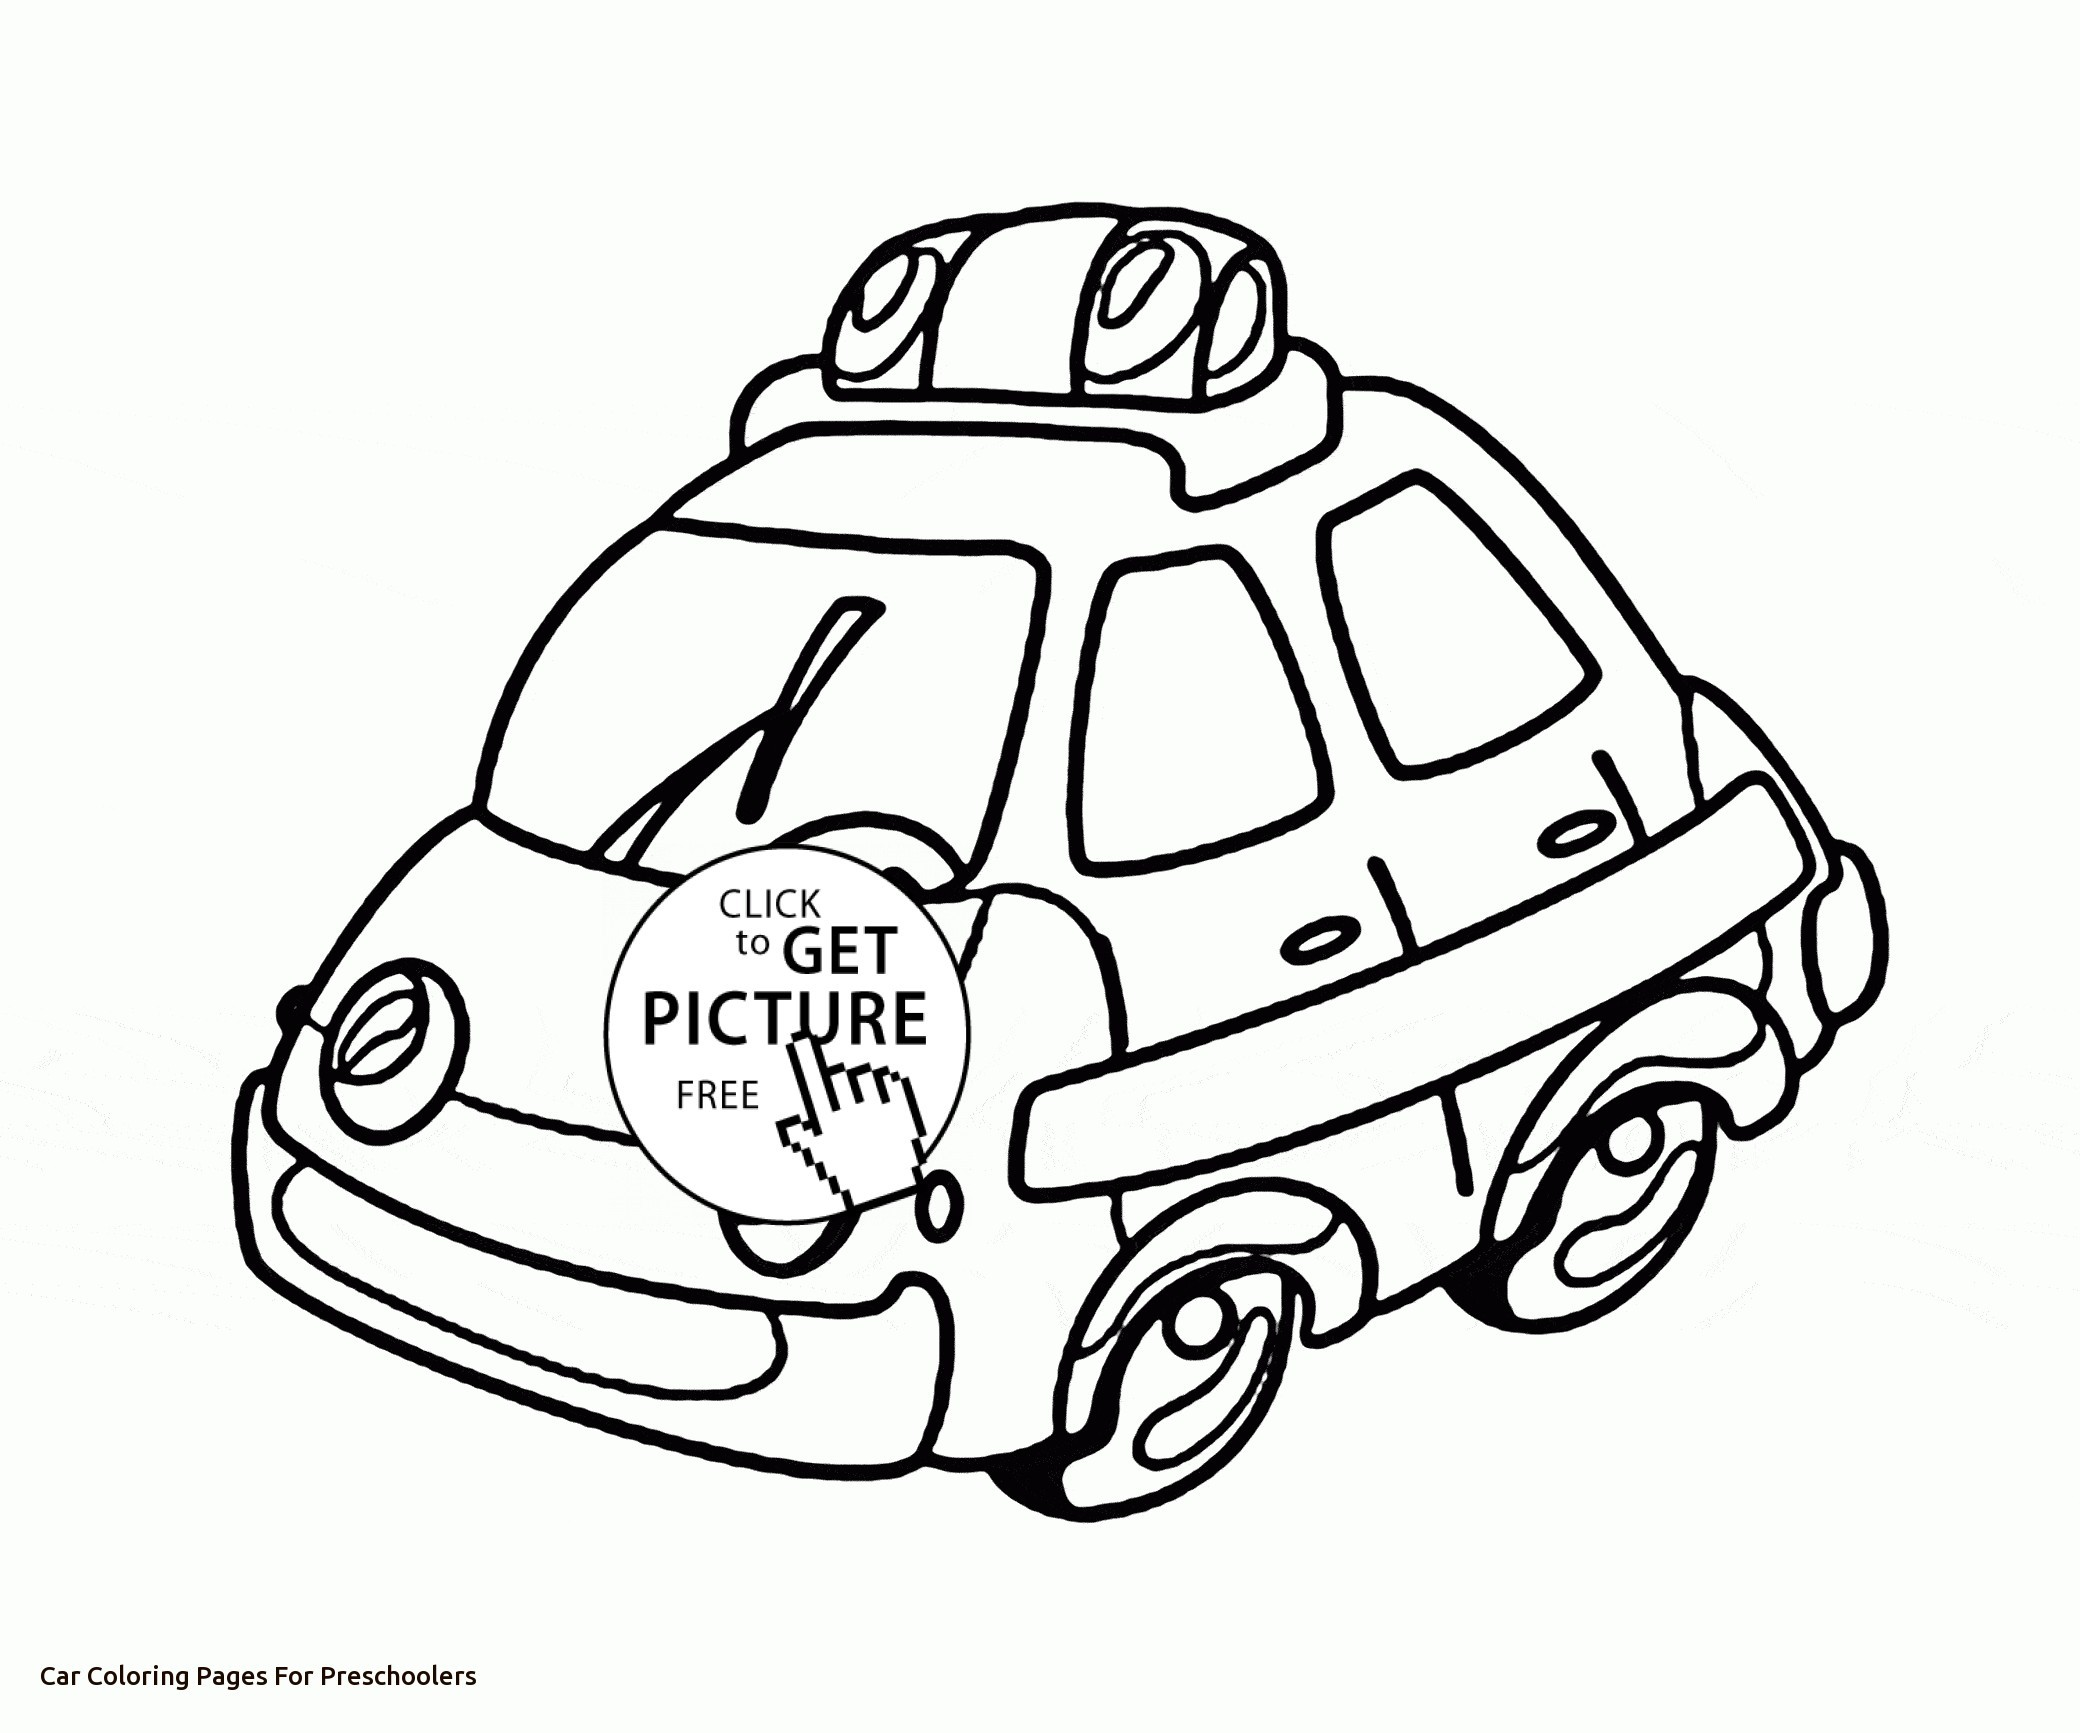 Car Coloring Pages For Preschoolers At Getcolorings